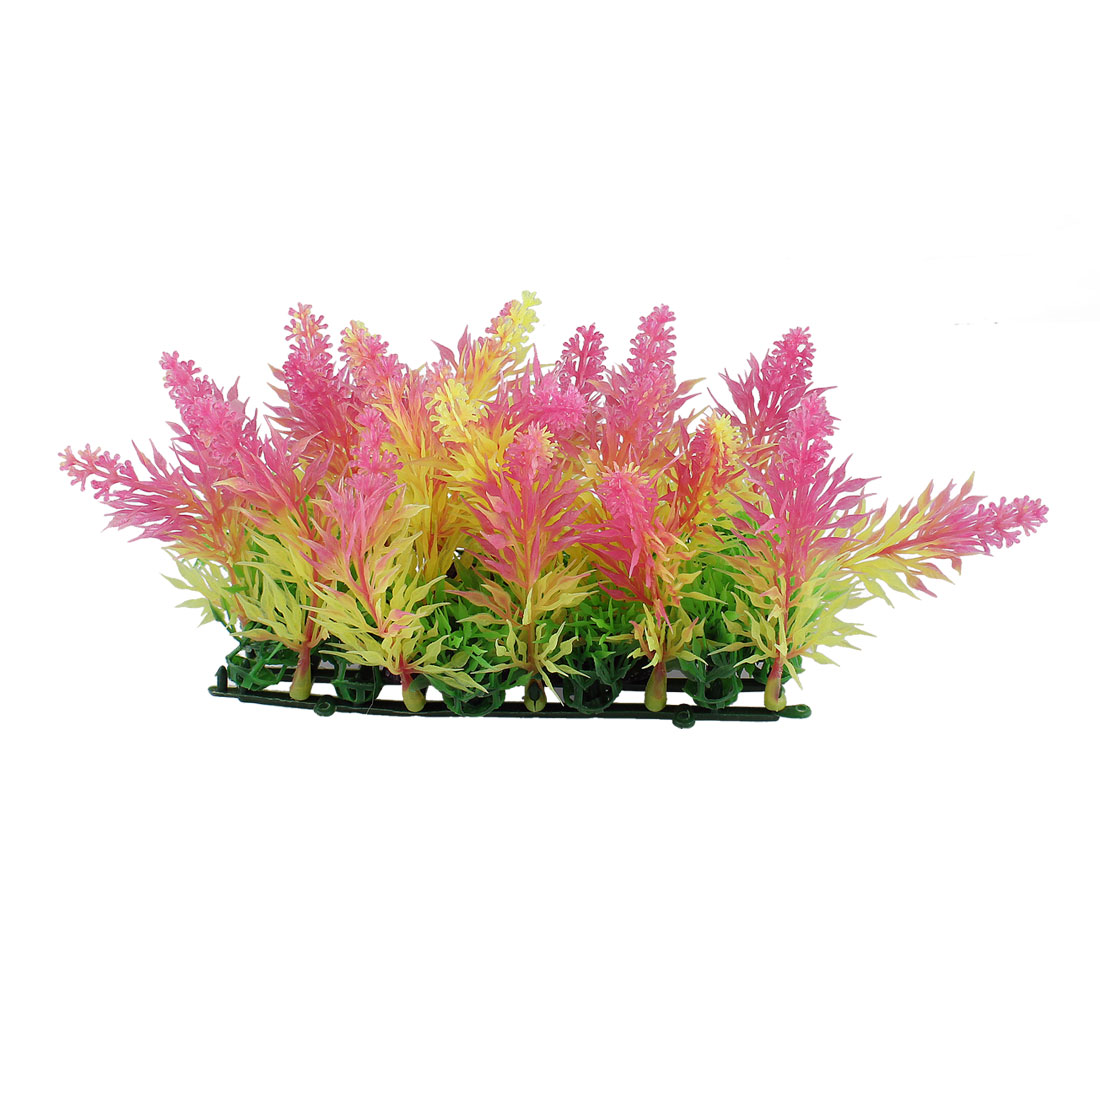 "Aquarium Decoration 5.5"" Height Pink Yellow Leaf Artificial Underwater Plant"